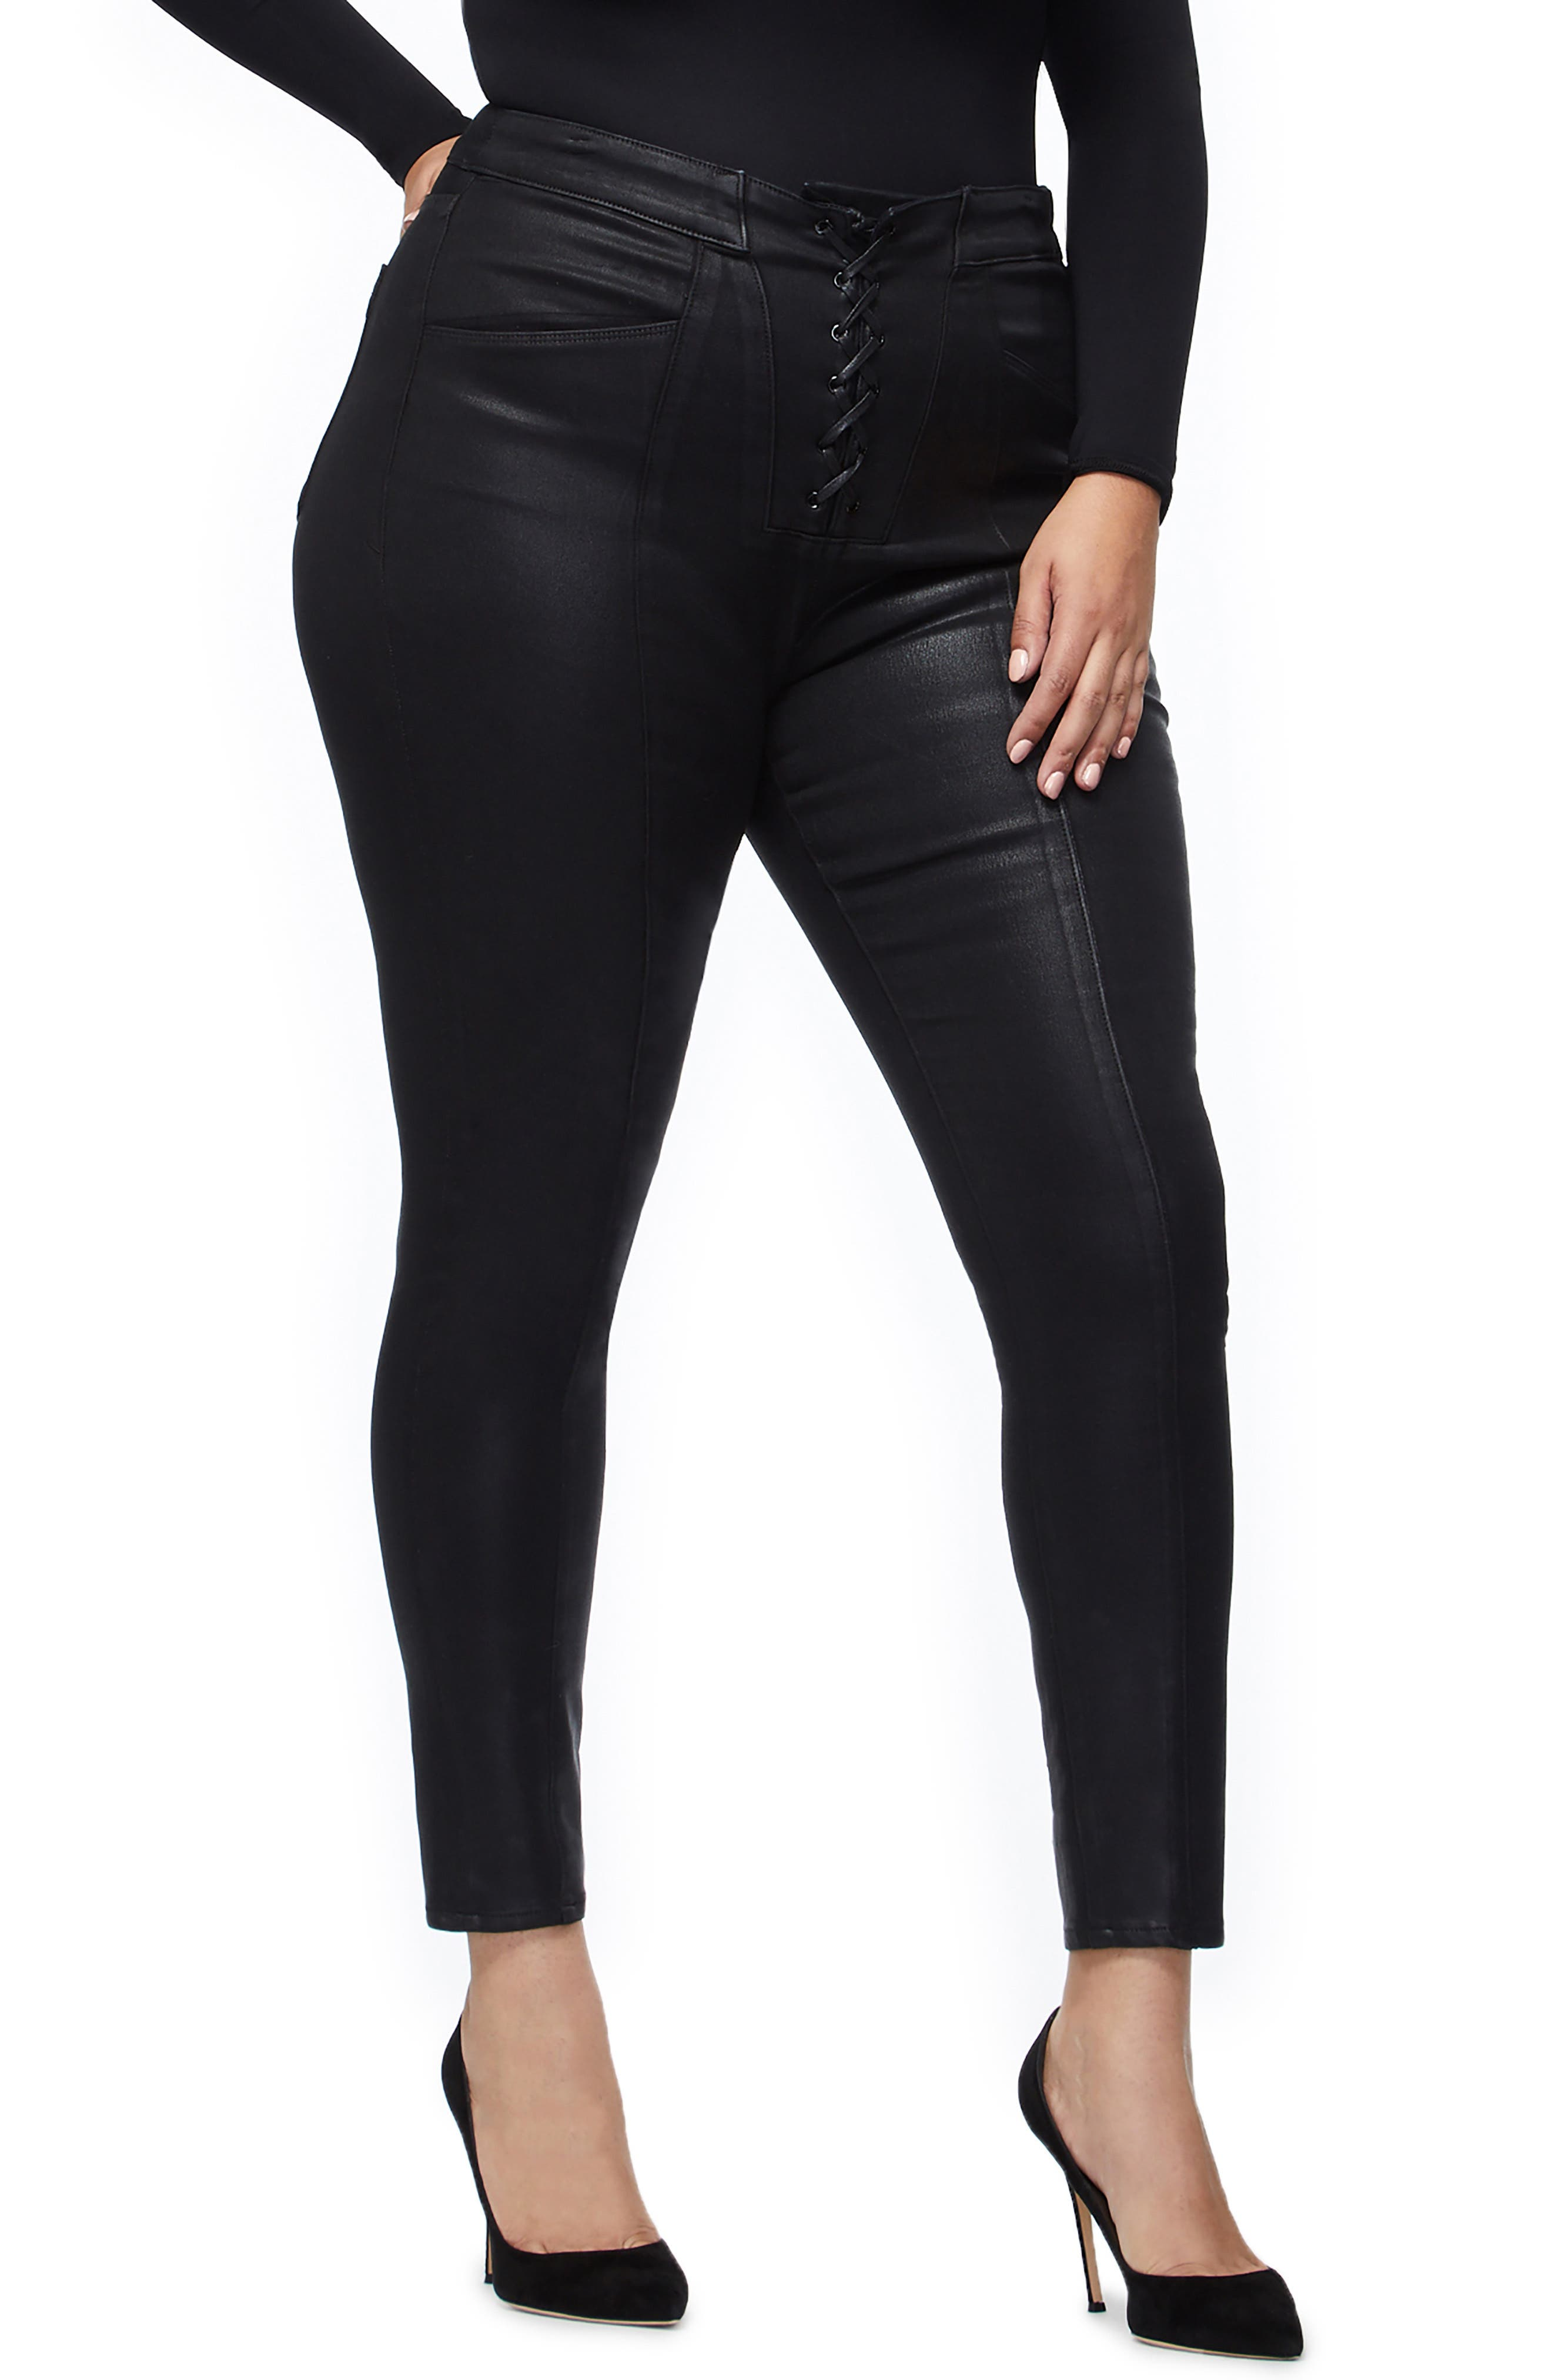 GOOD AMERICAN, Coated Lace-Up High Waist Skinny Jeans, Alternate thumbnail 6, color, BLACK034